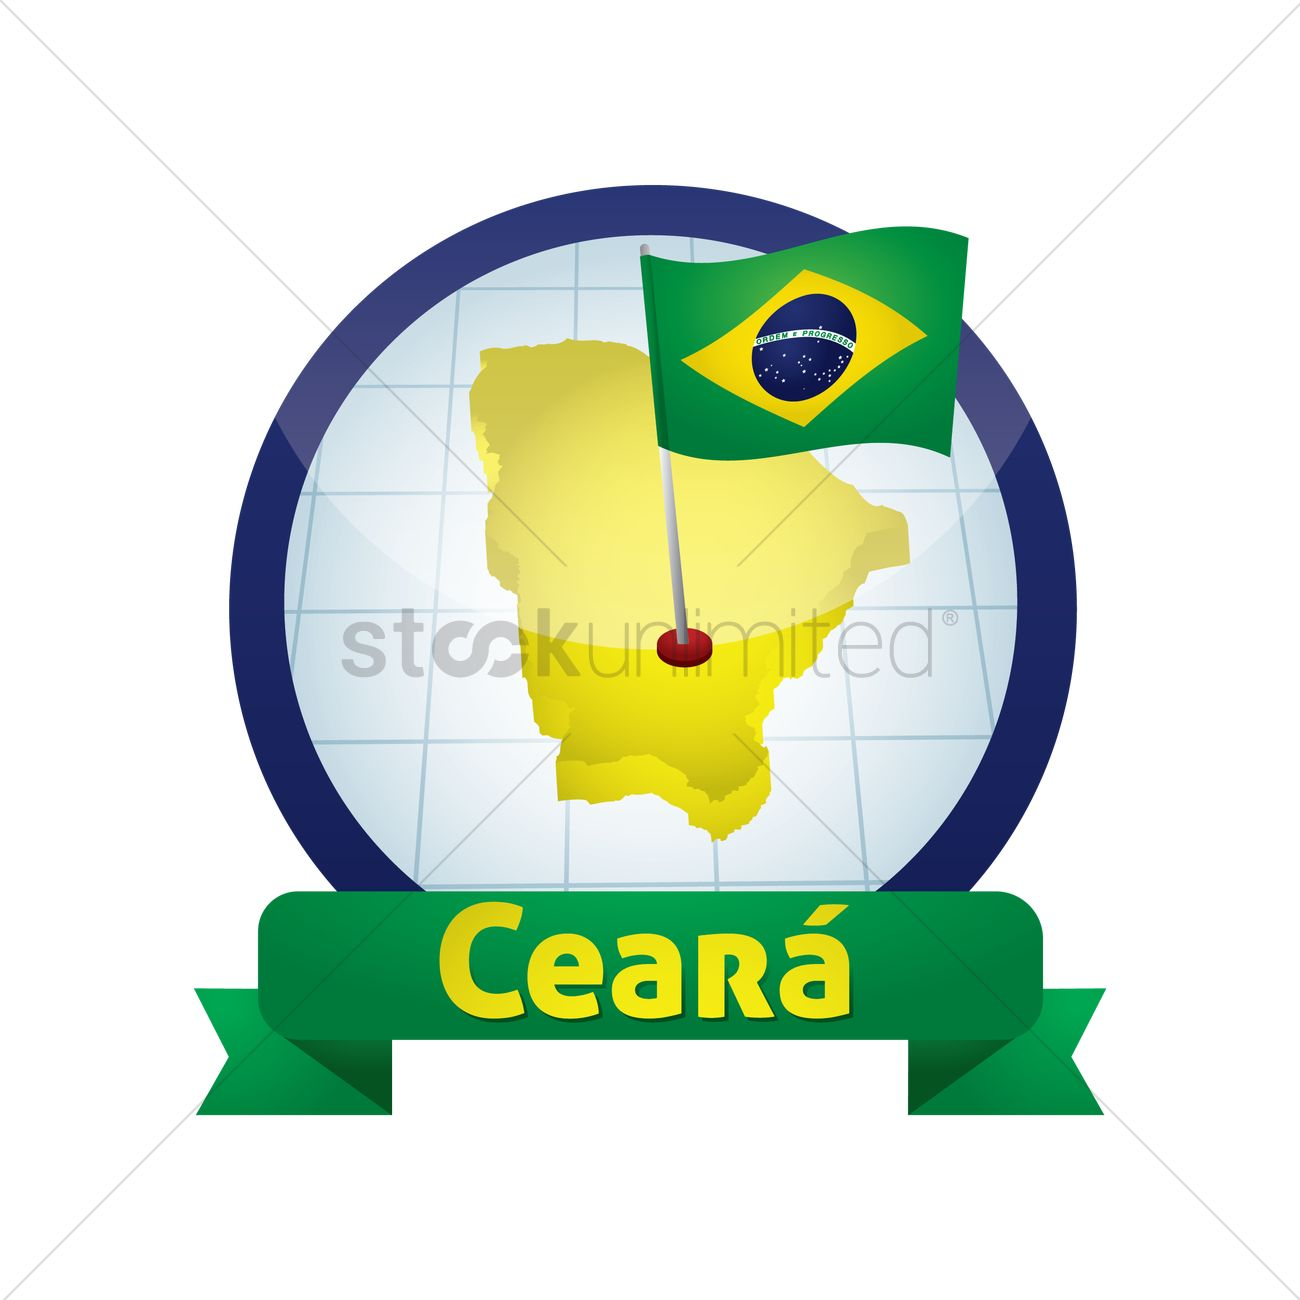 Ceara map Vector Image.